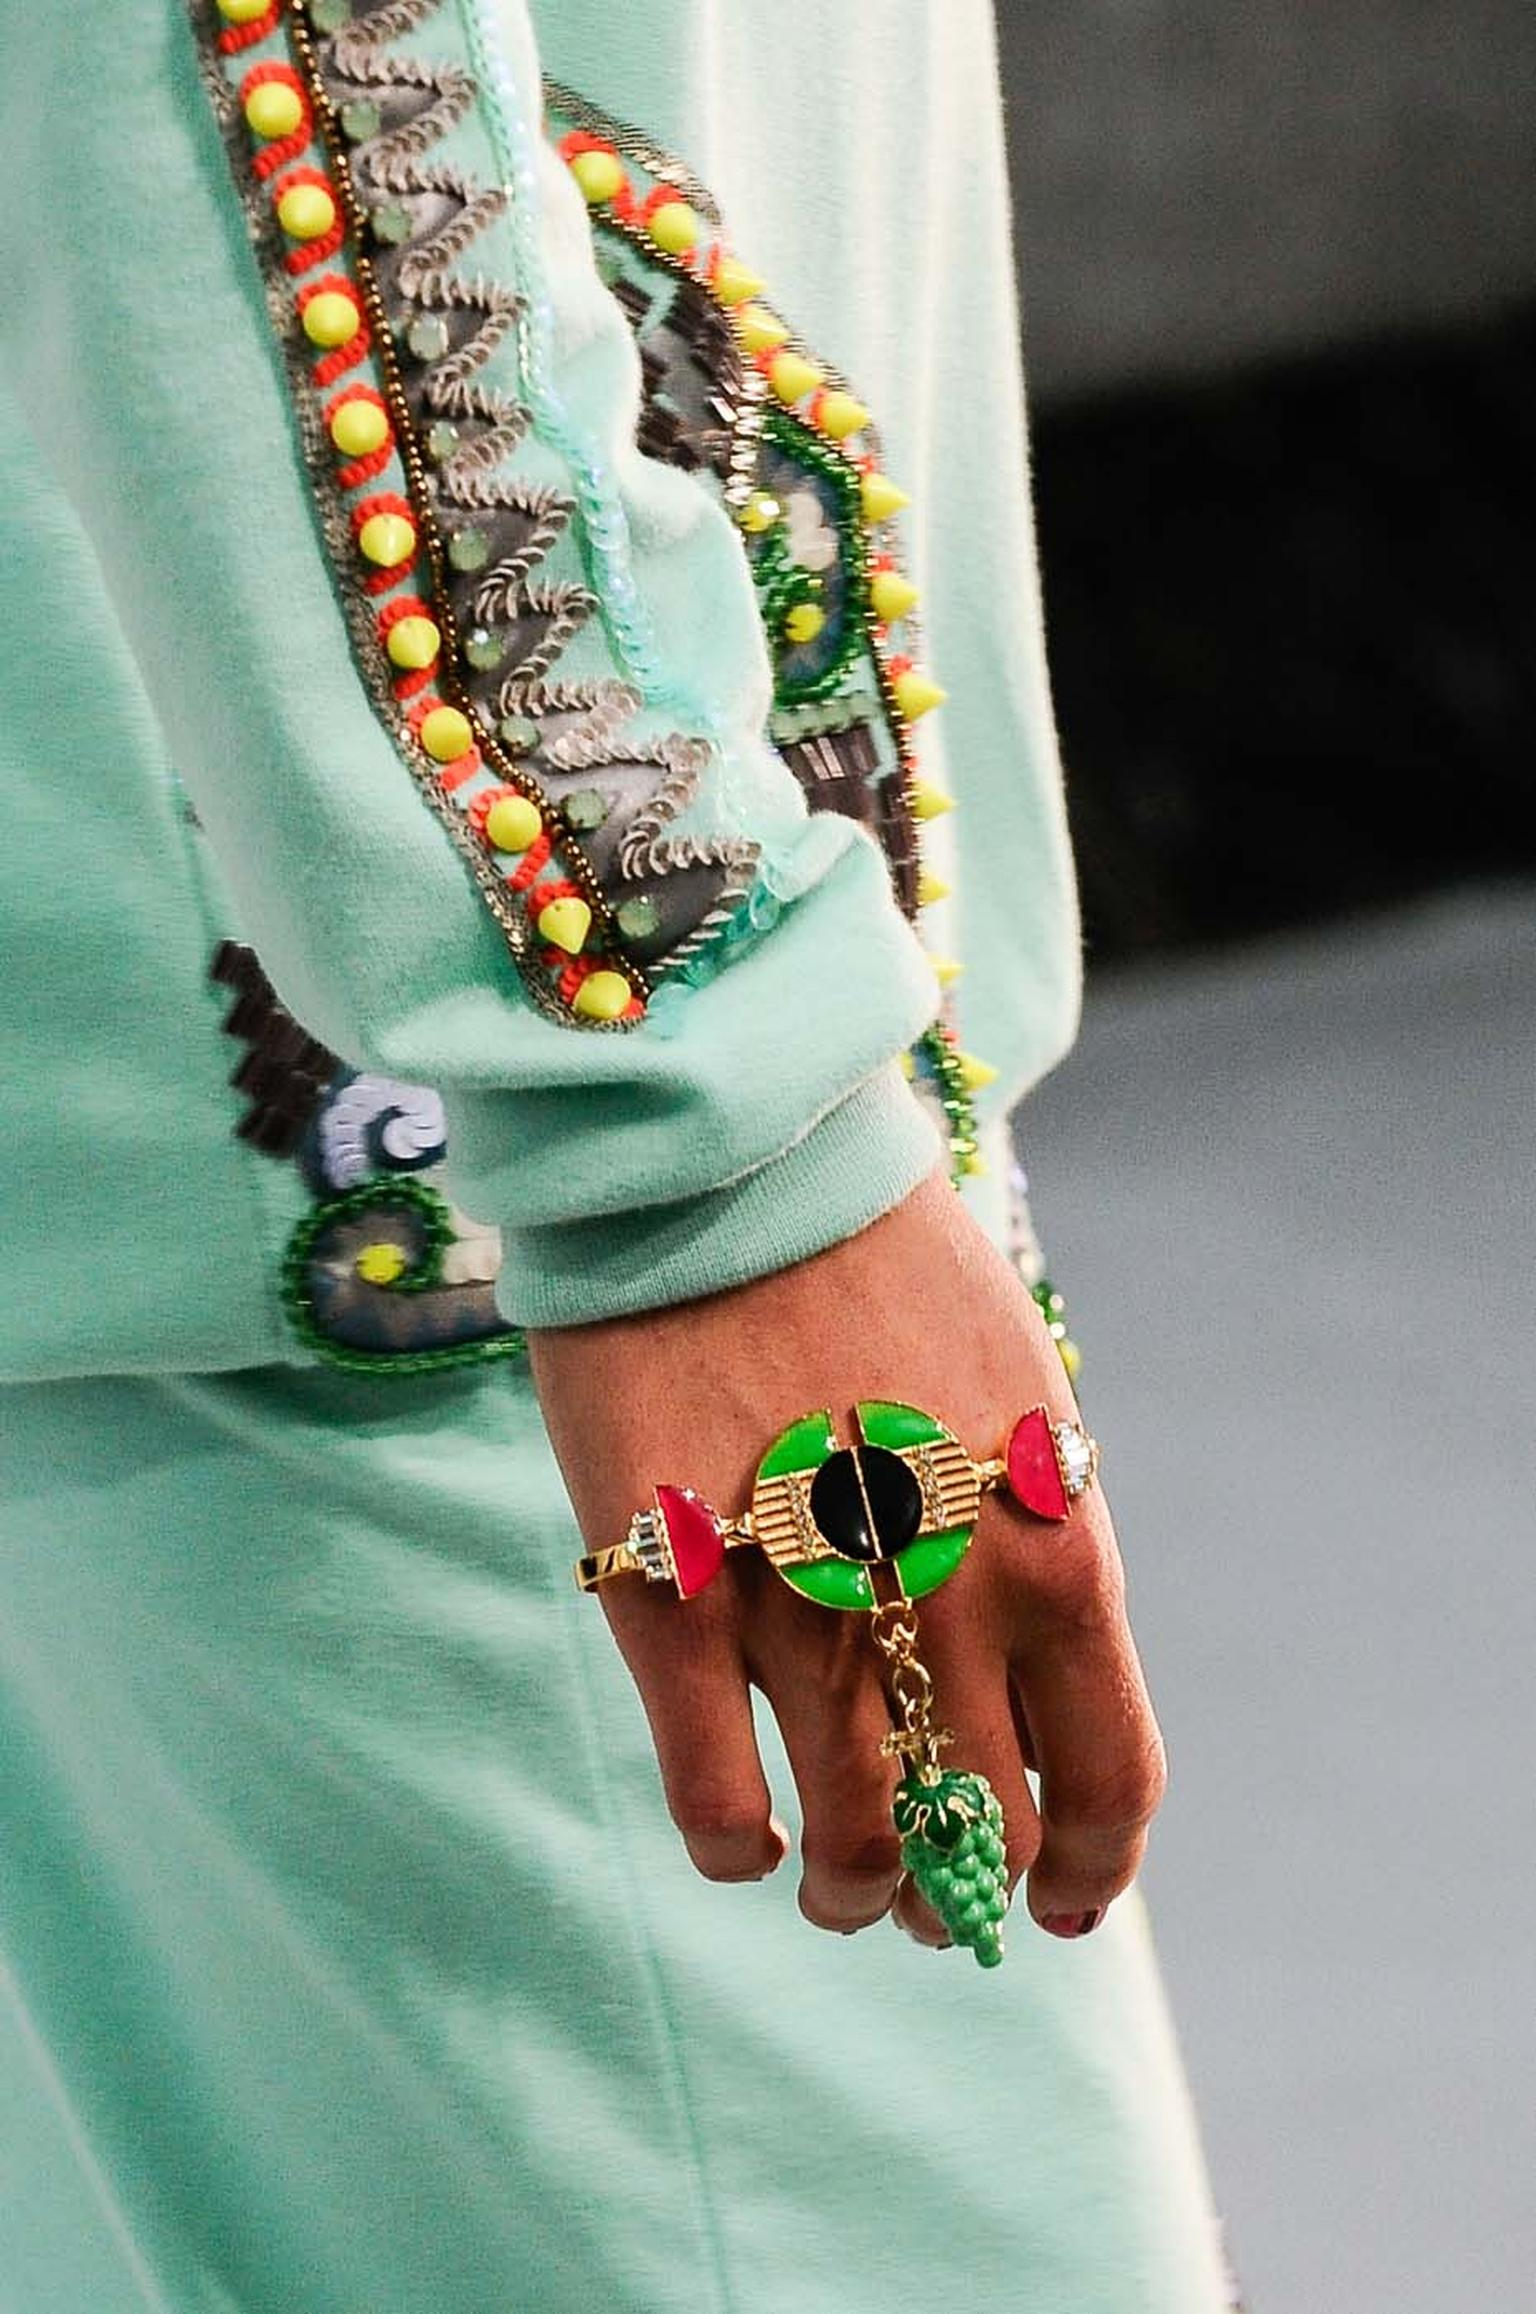 Incorporating structured shapes and prints, Amrapali for Manish Arora's jewels for 2014 continue the colourful theme of previous collection